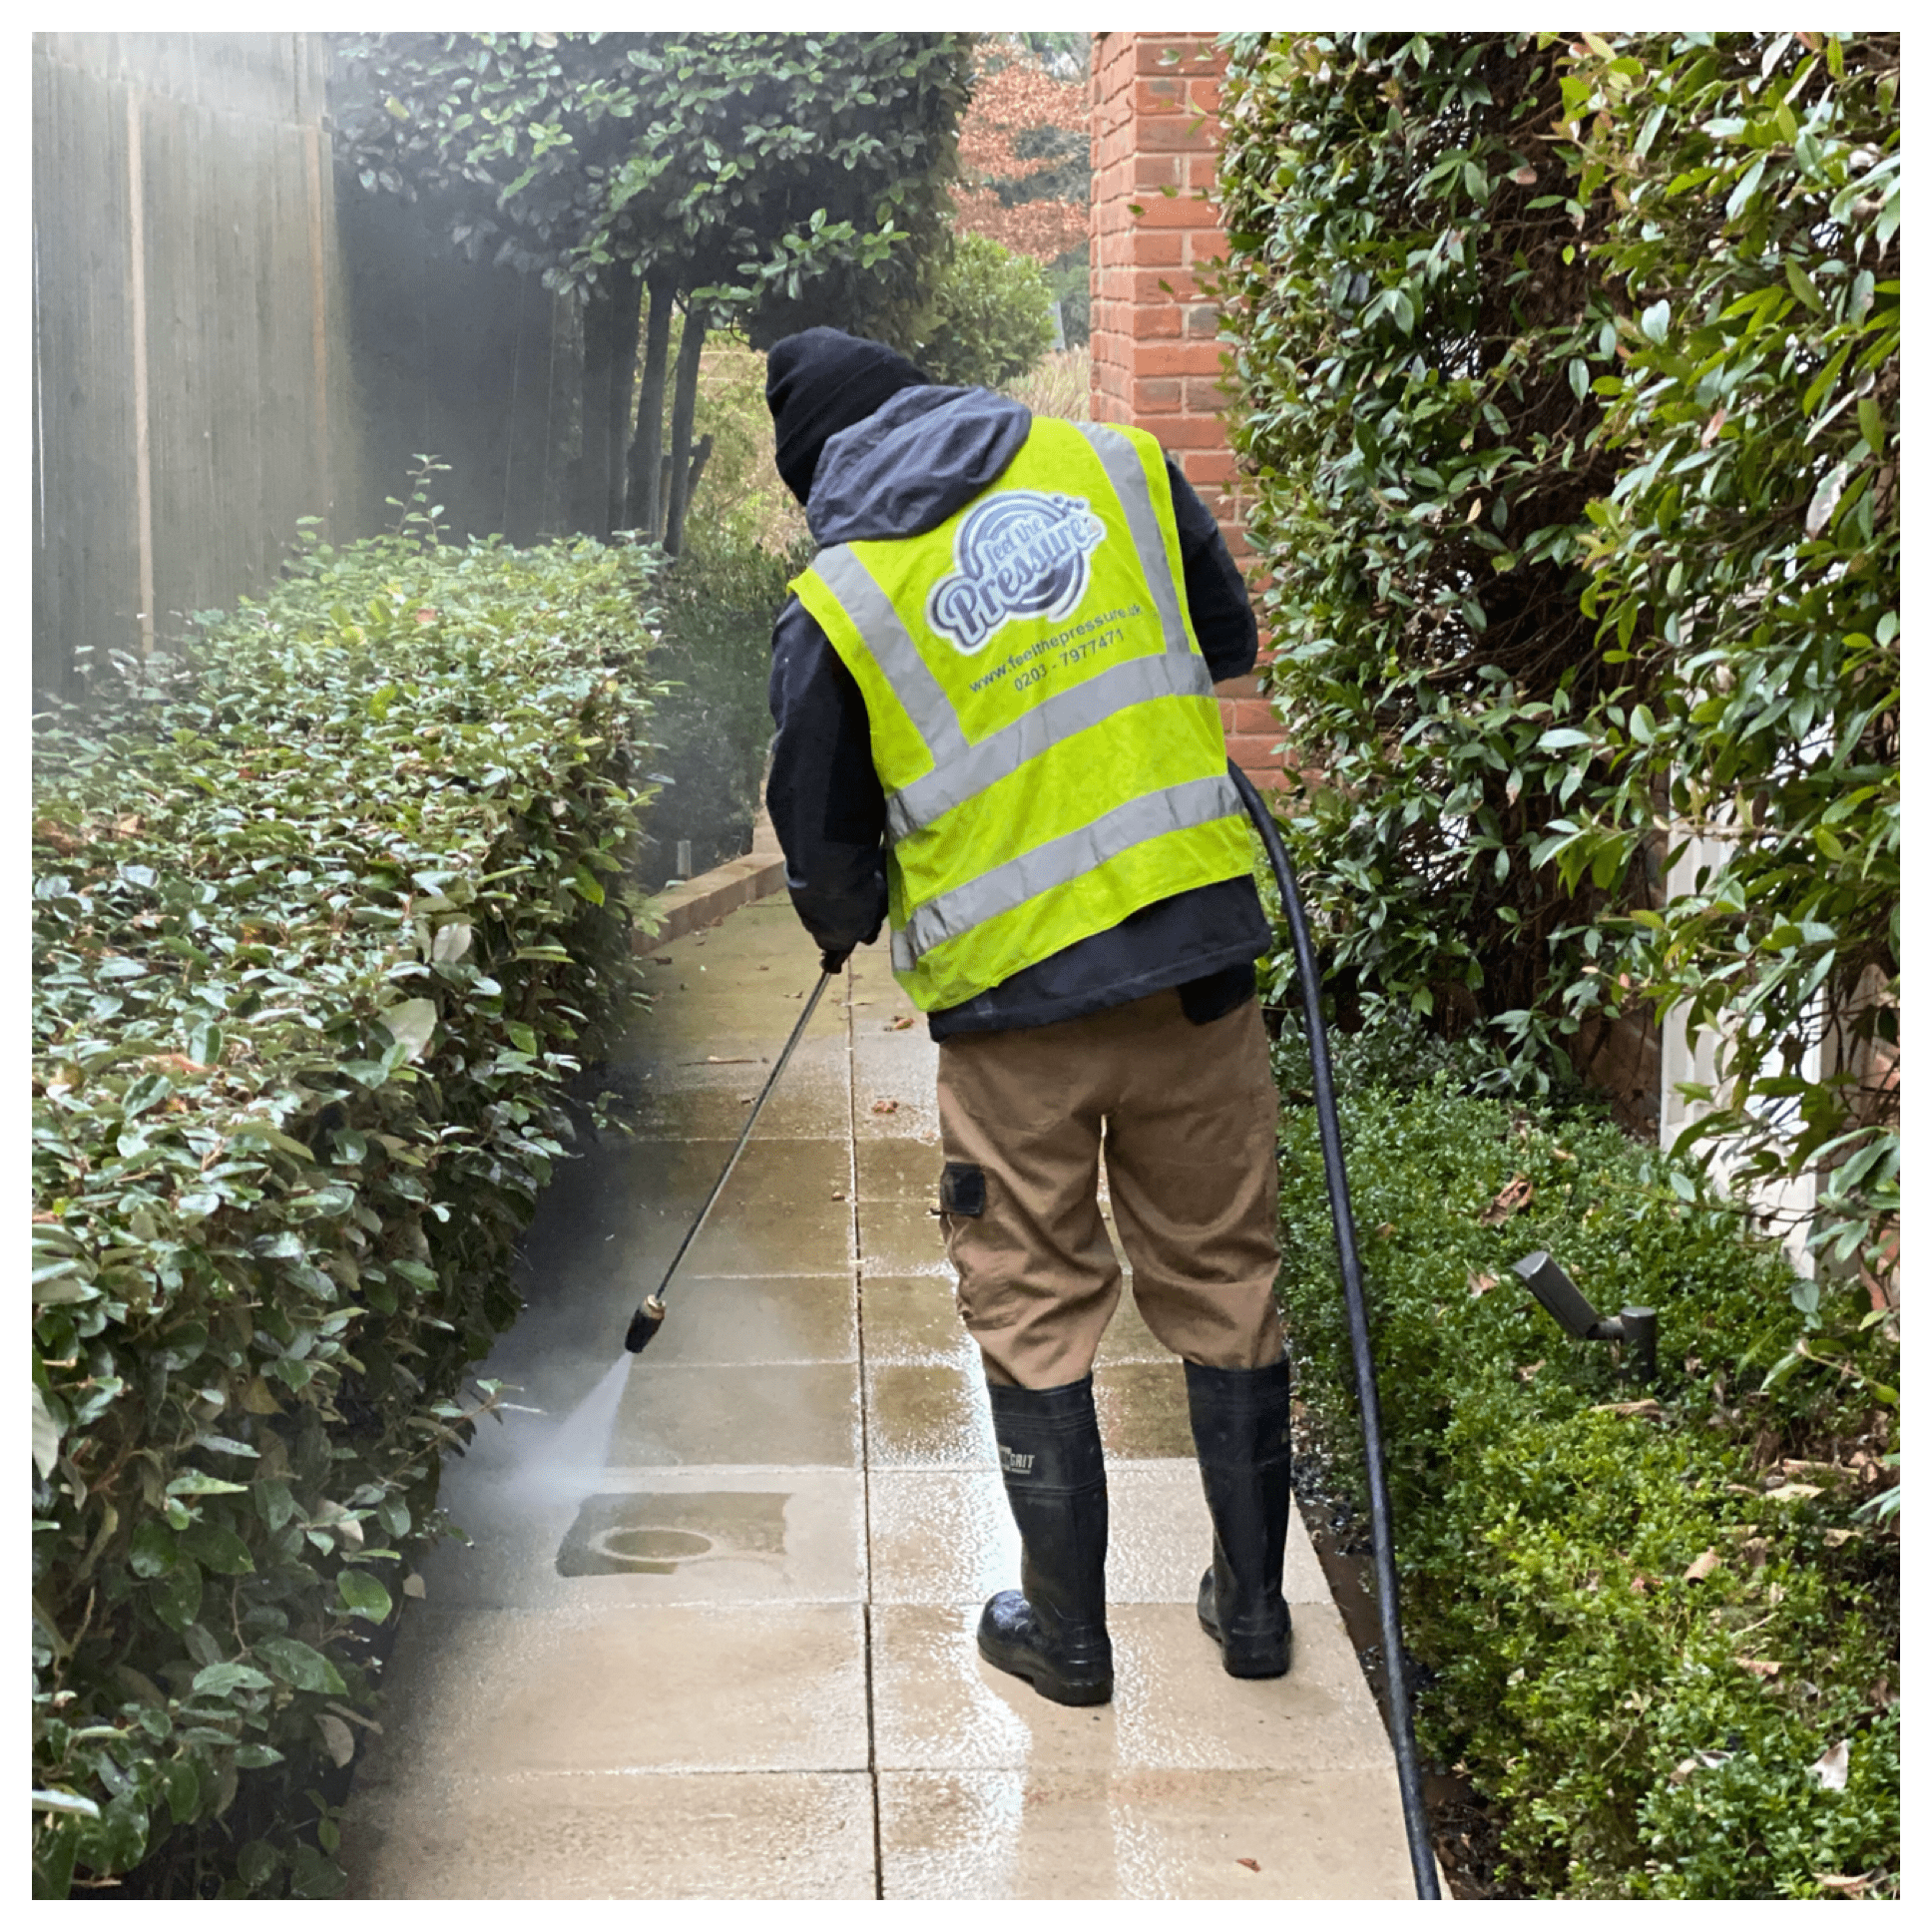 HIGH PRESSURE PATIO CLEANING